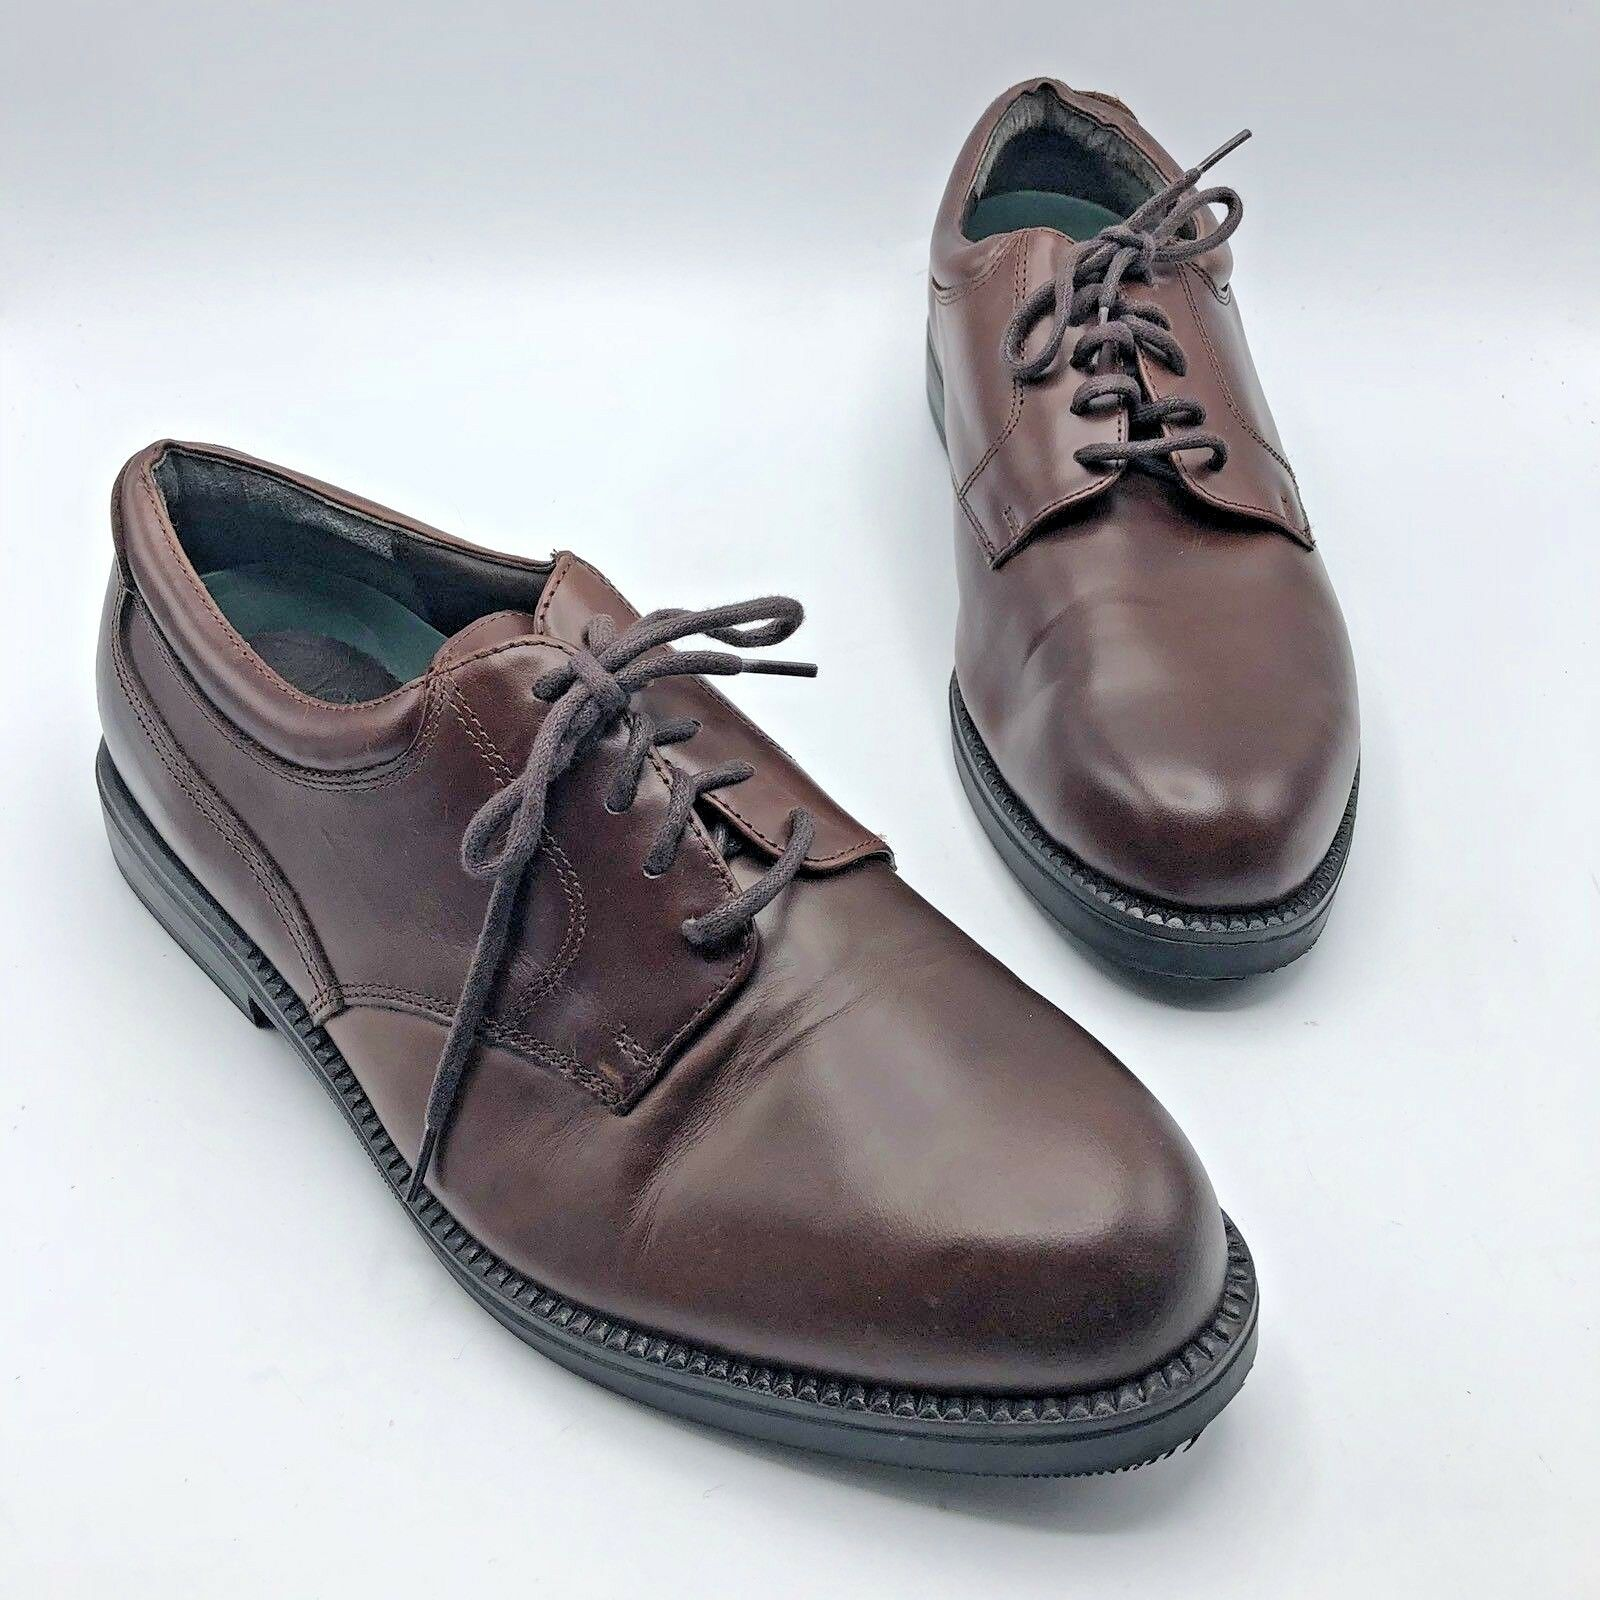 Nunn Bush 83764-51 Men Brown Leather Lace Up Oxford shoes Size 12M Pre Owned